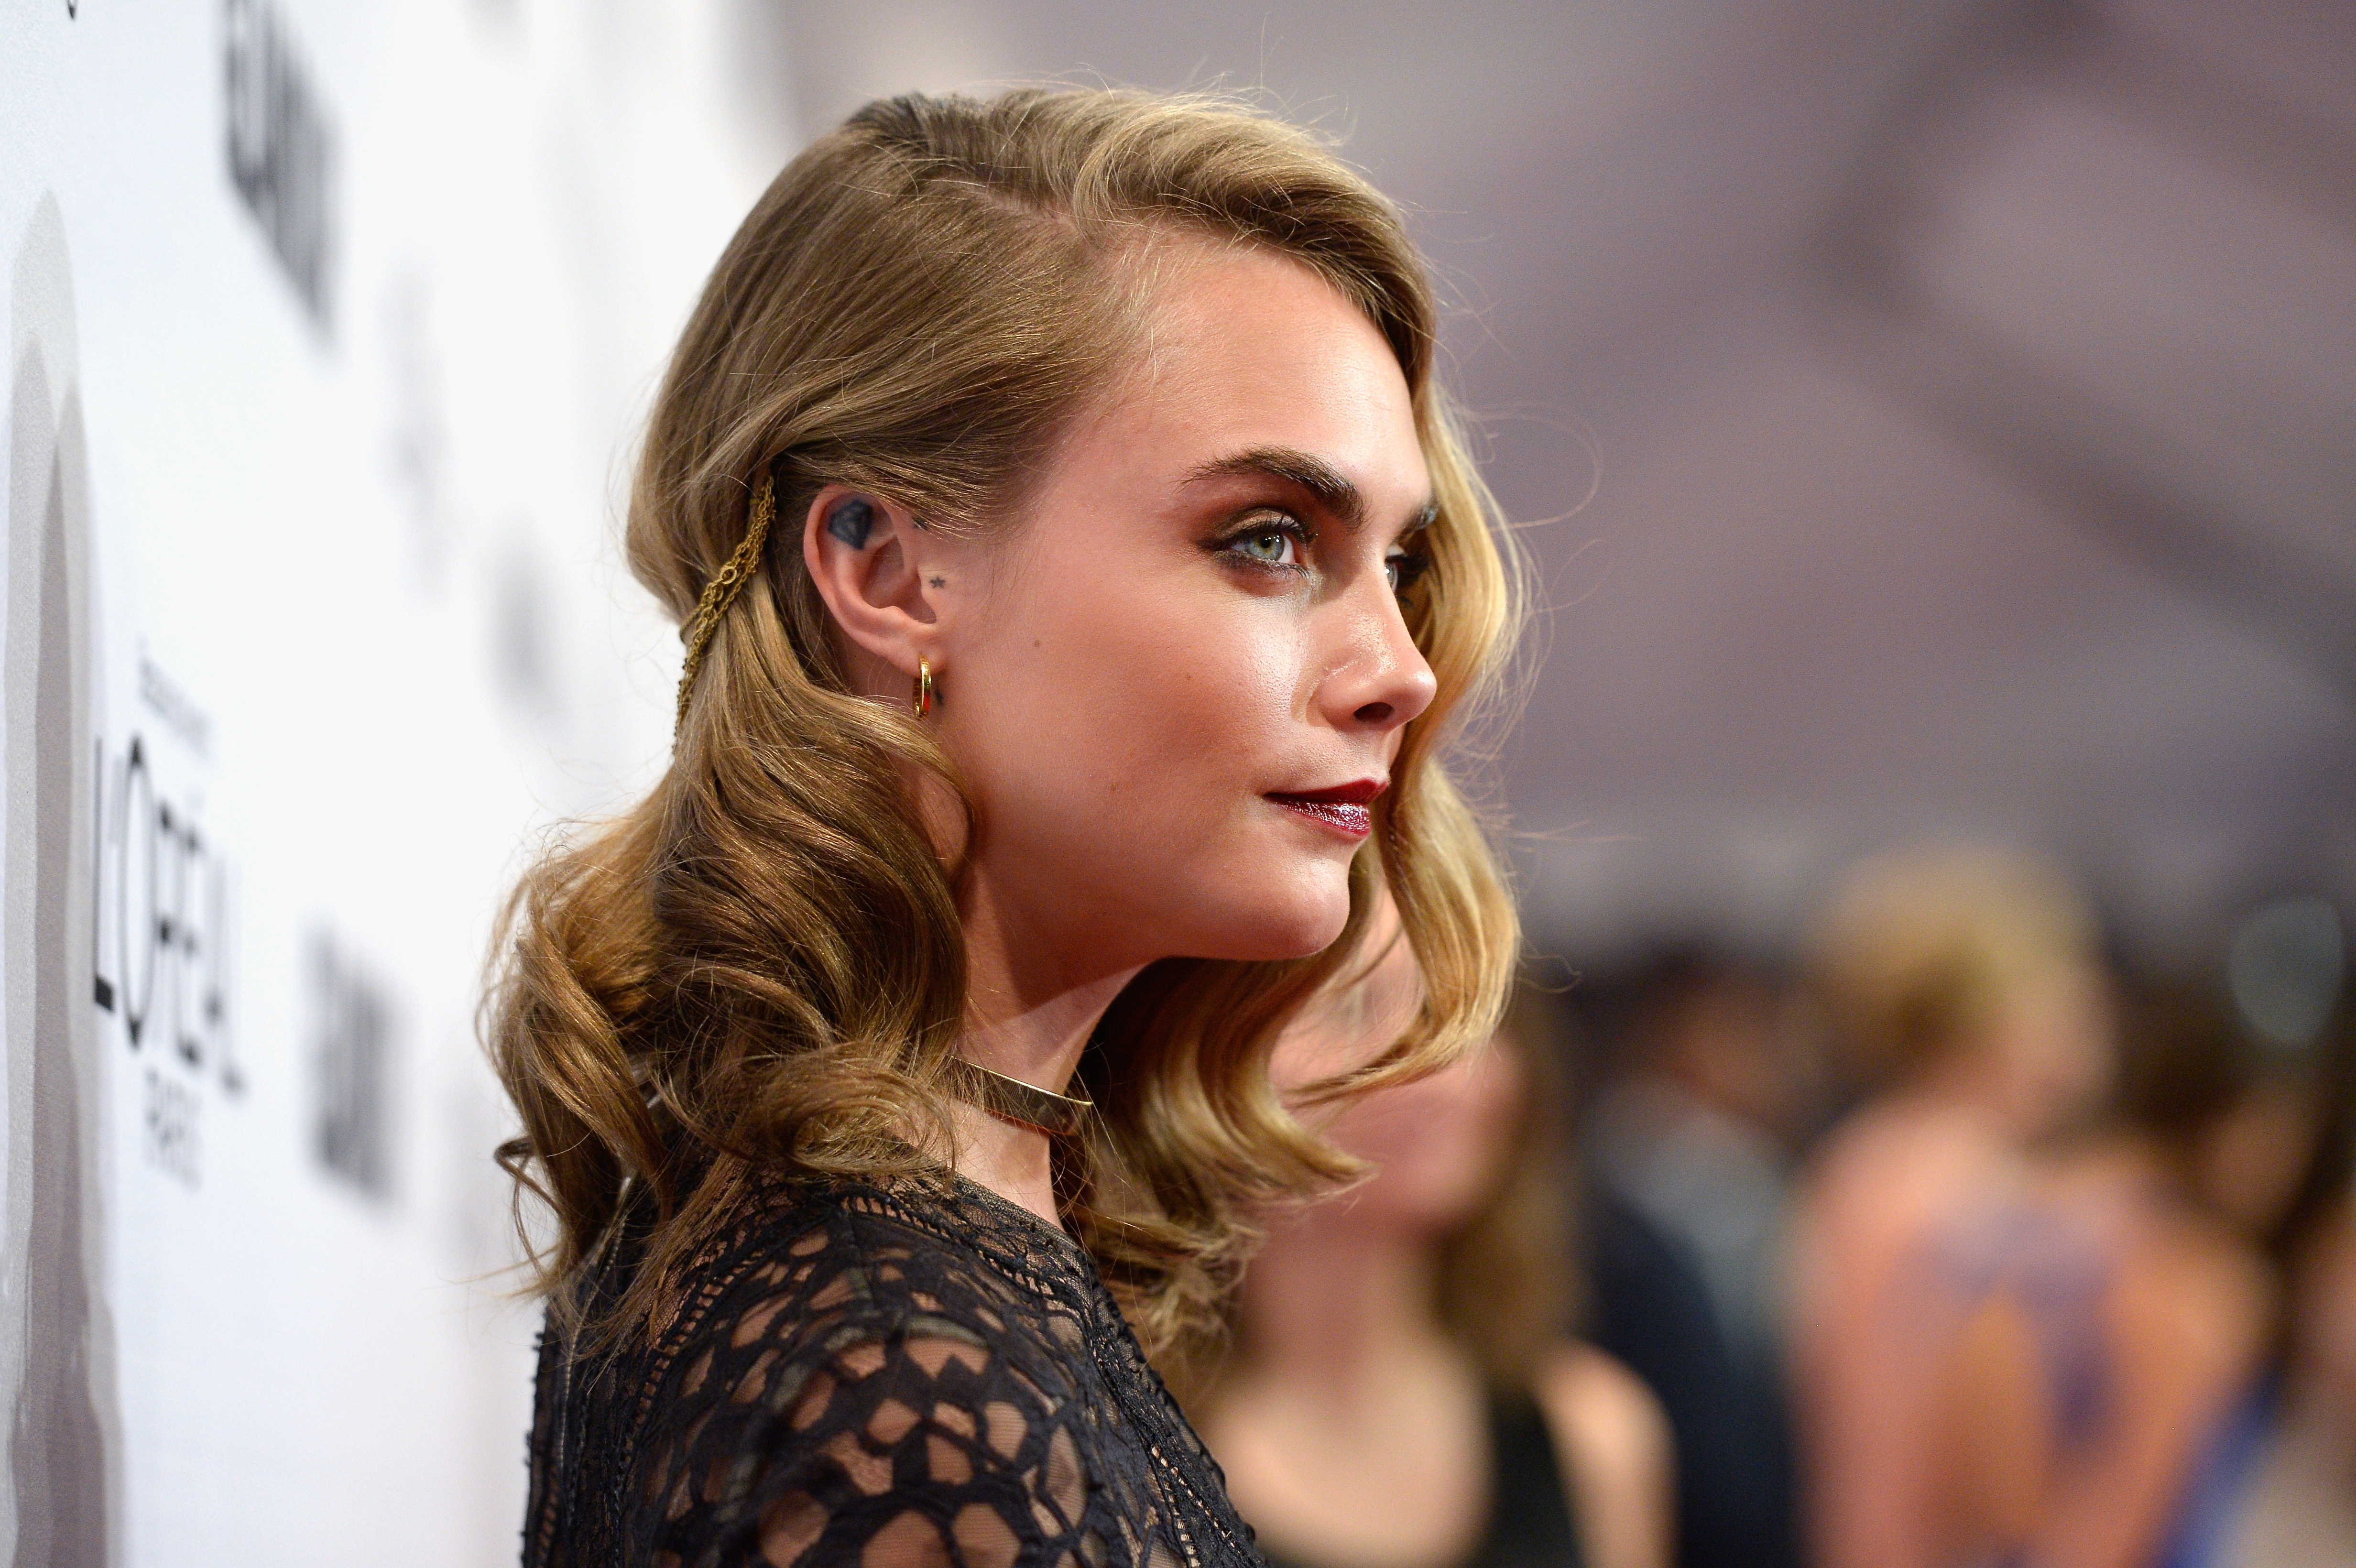 Cara Delevingne Tells Women To Build Each Other Up Time